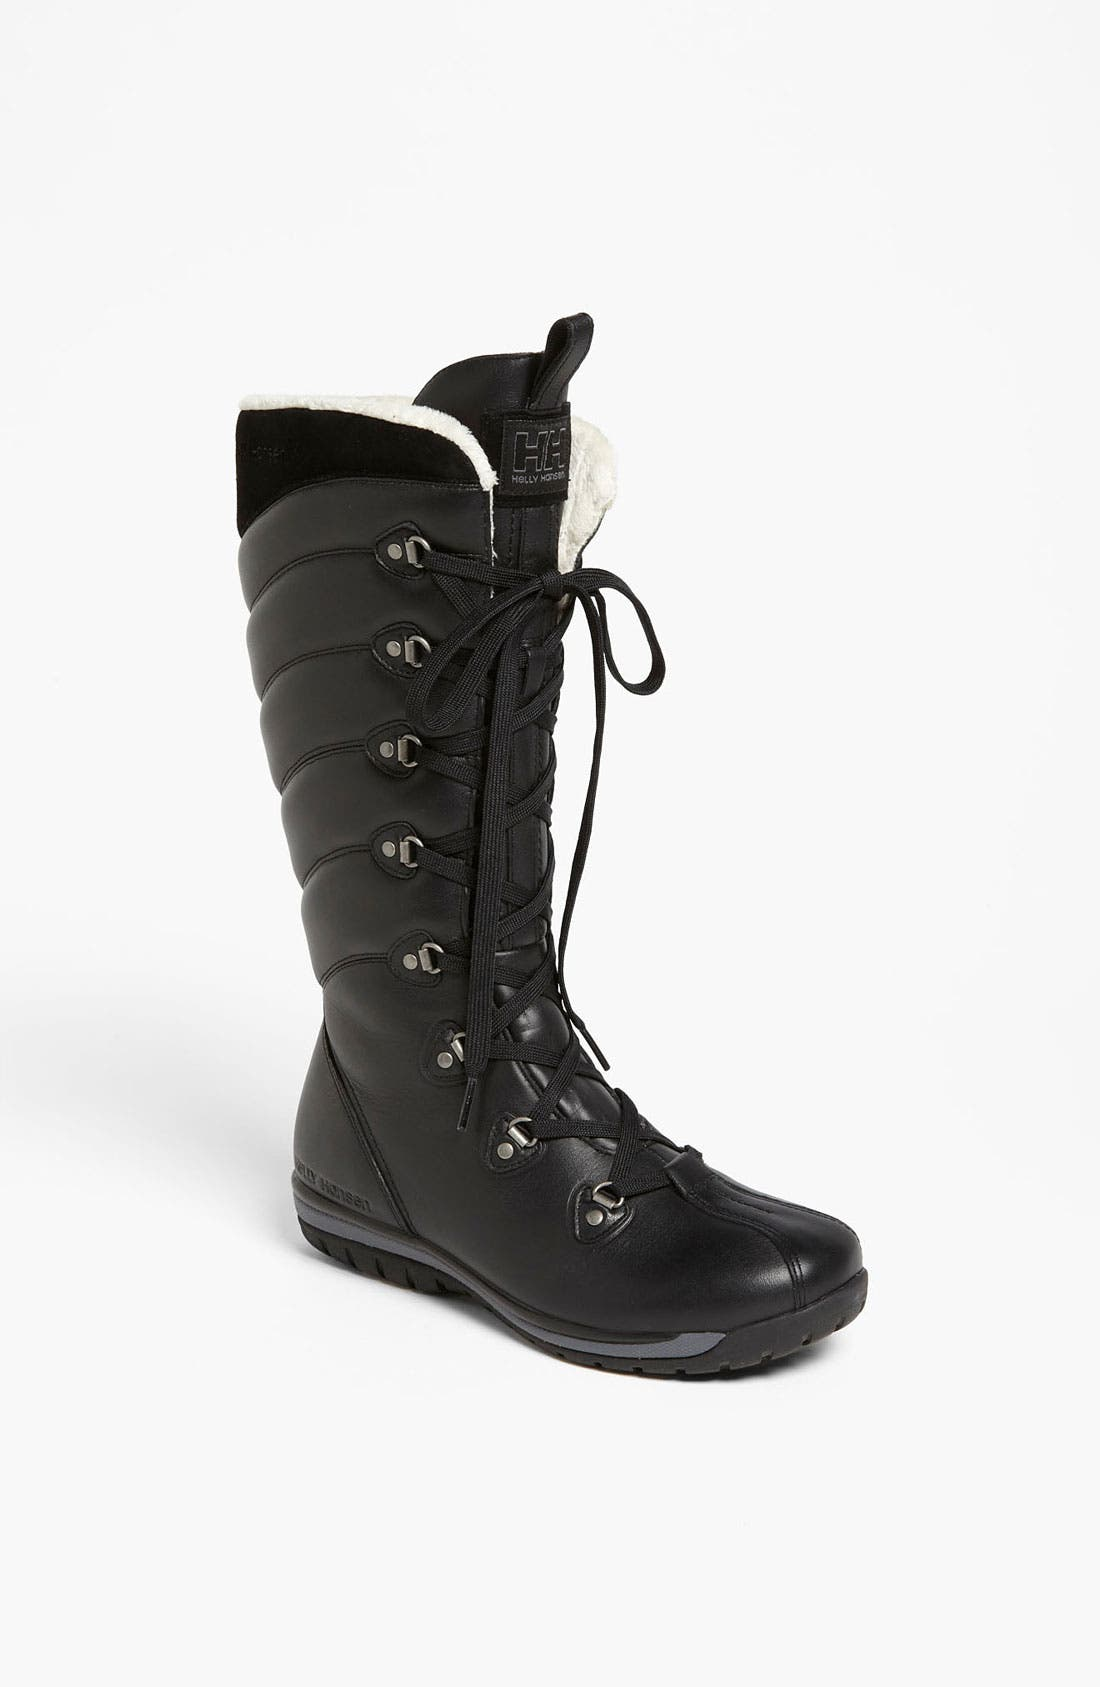 Alternate Image 1 Selected - Helly Hansen 'Skuld 3' Boot